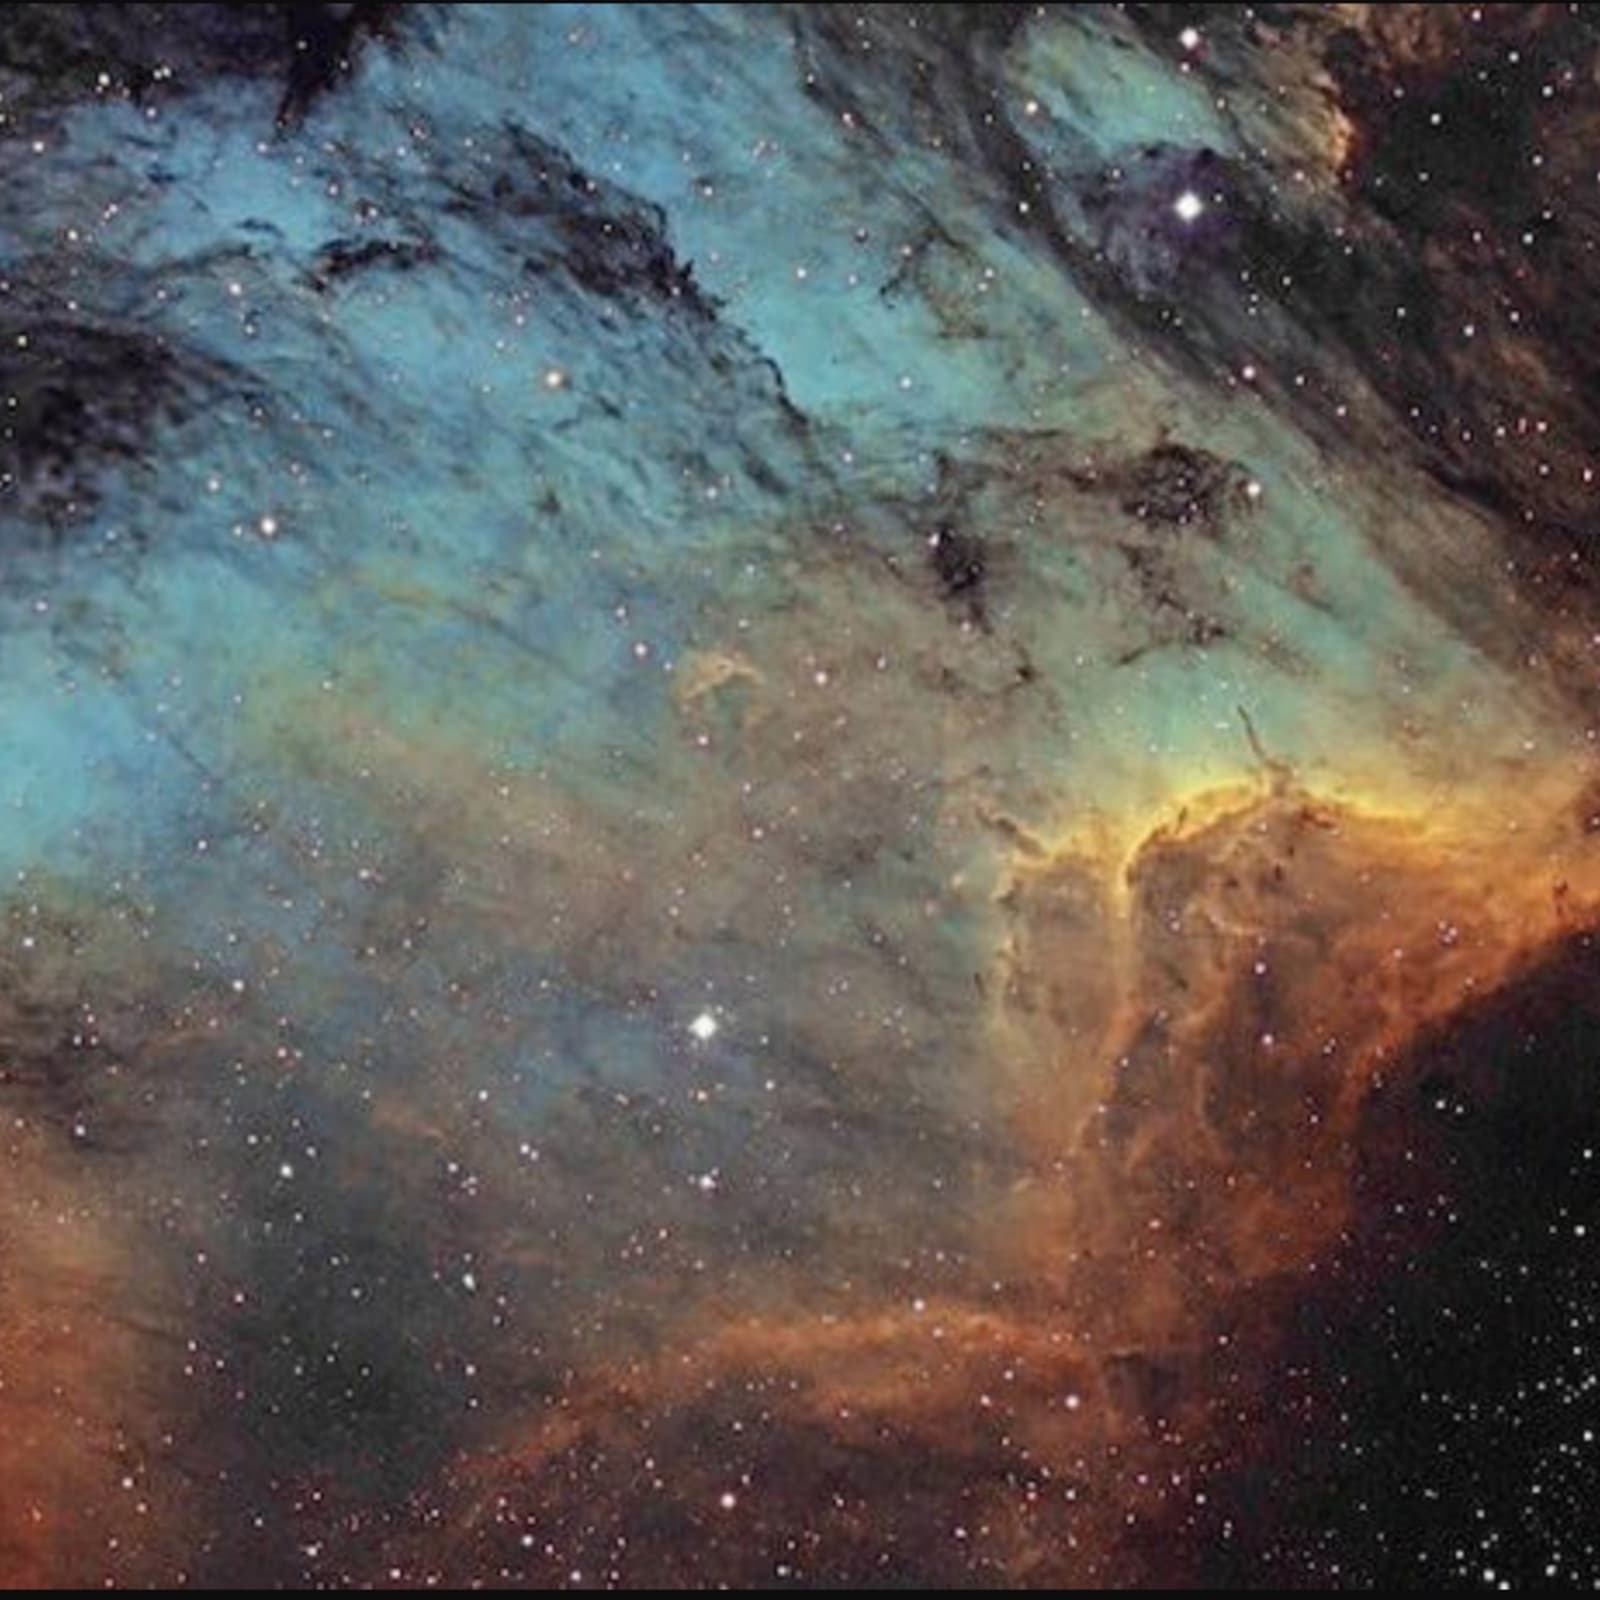 Talk by artist and 'Deep Space Astro-Photographer' Chris Baker